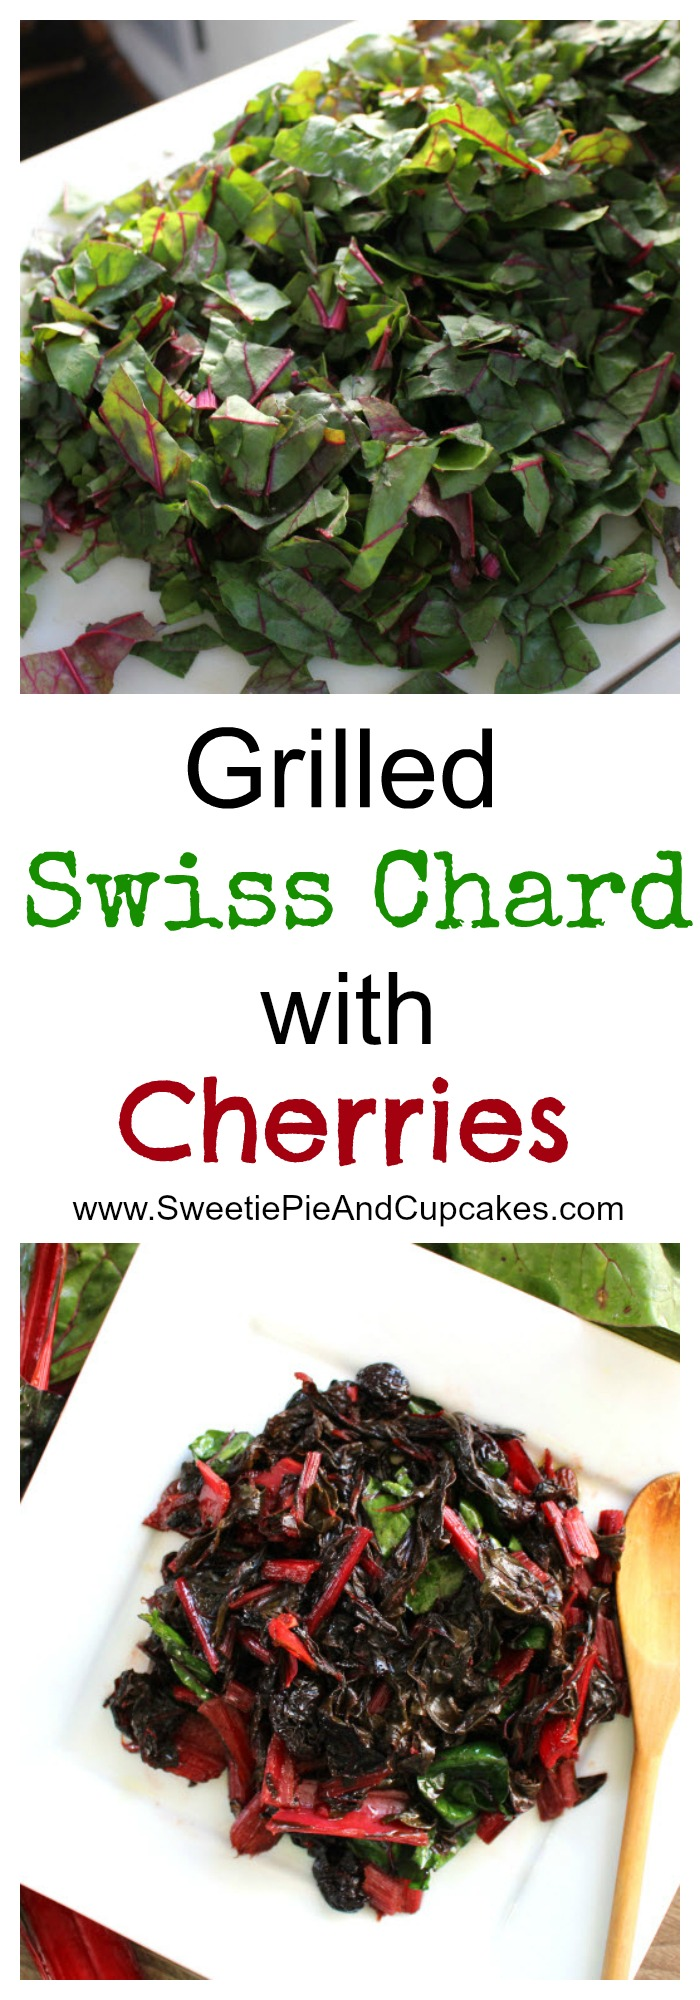 Grilled Swiss Chard with Cherries Pin